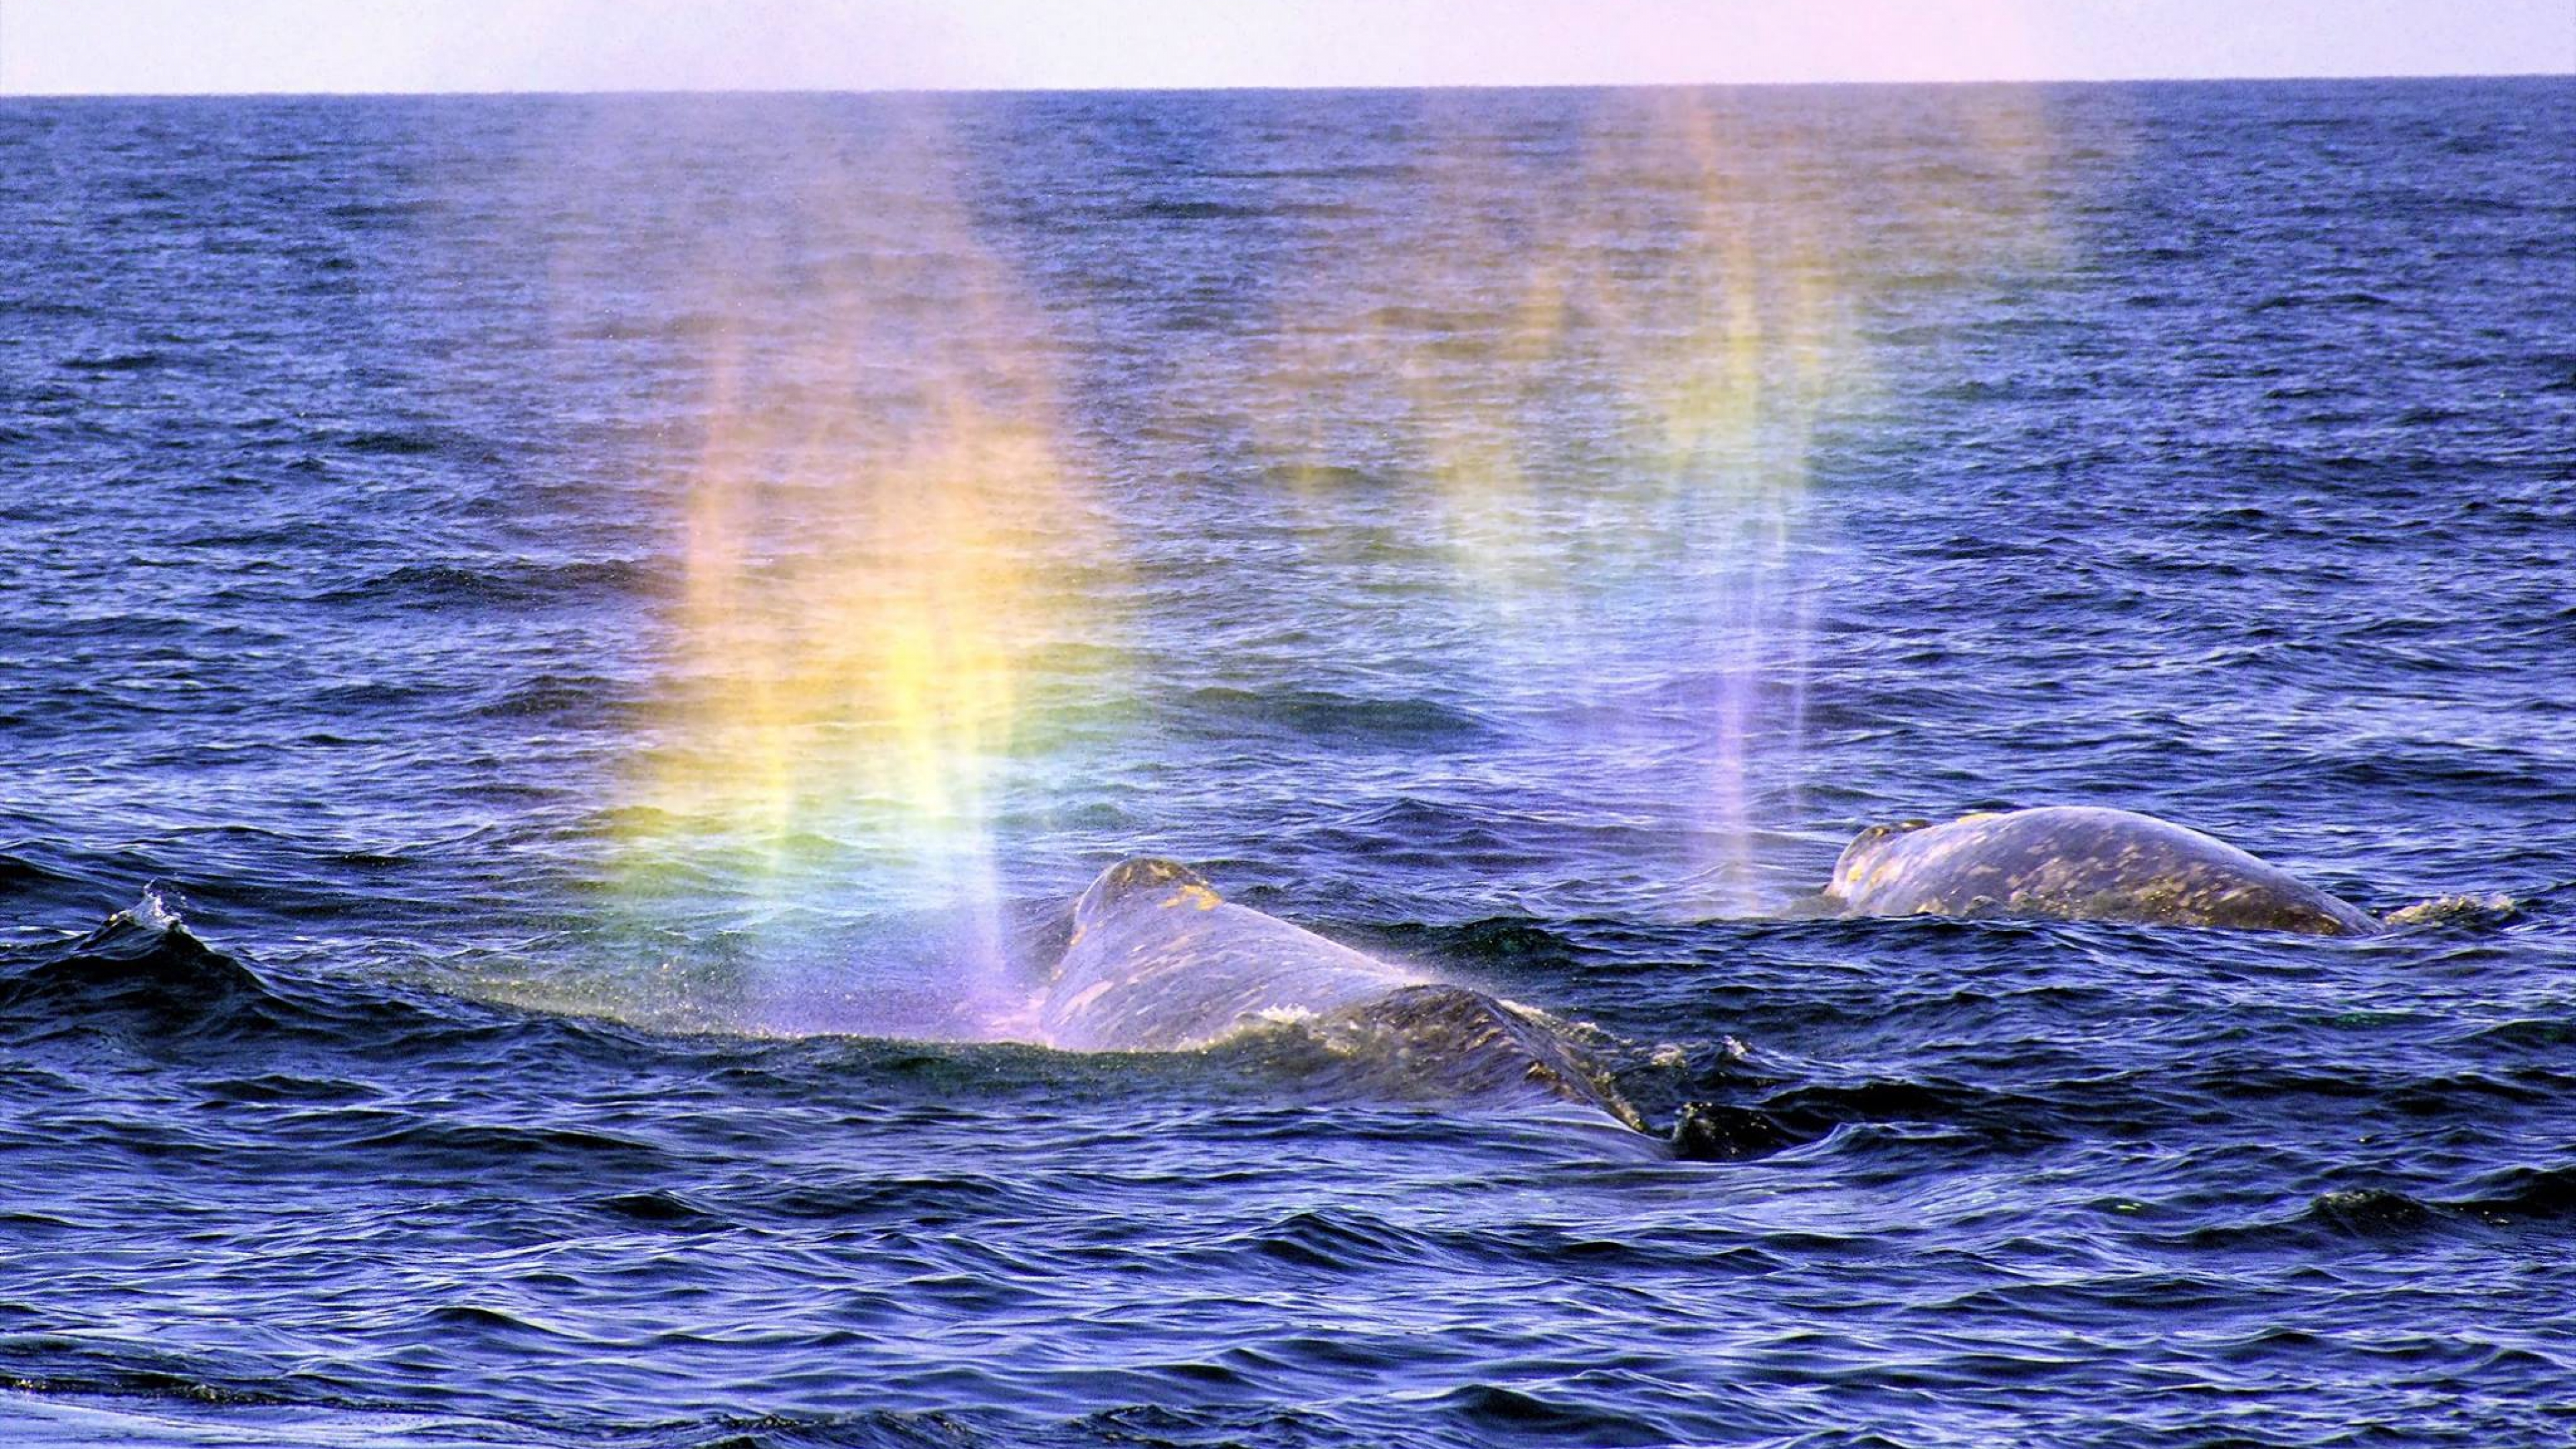 Two gray whales spouting with a rainbow in the mist off the shore of Channel Islands National Park